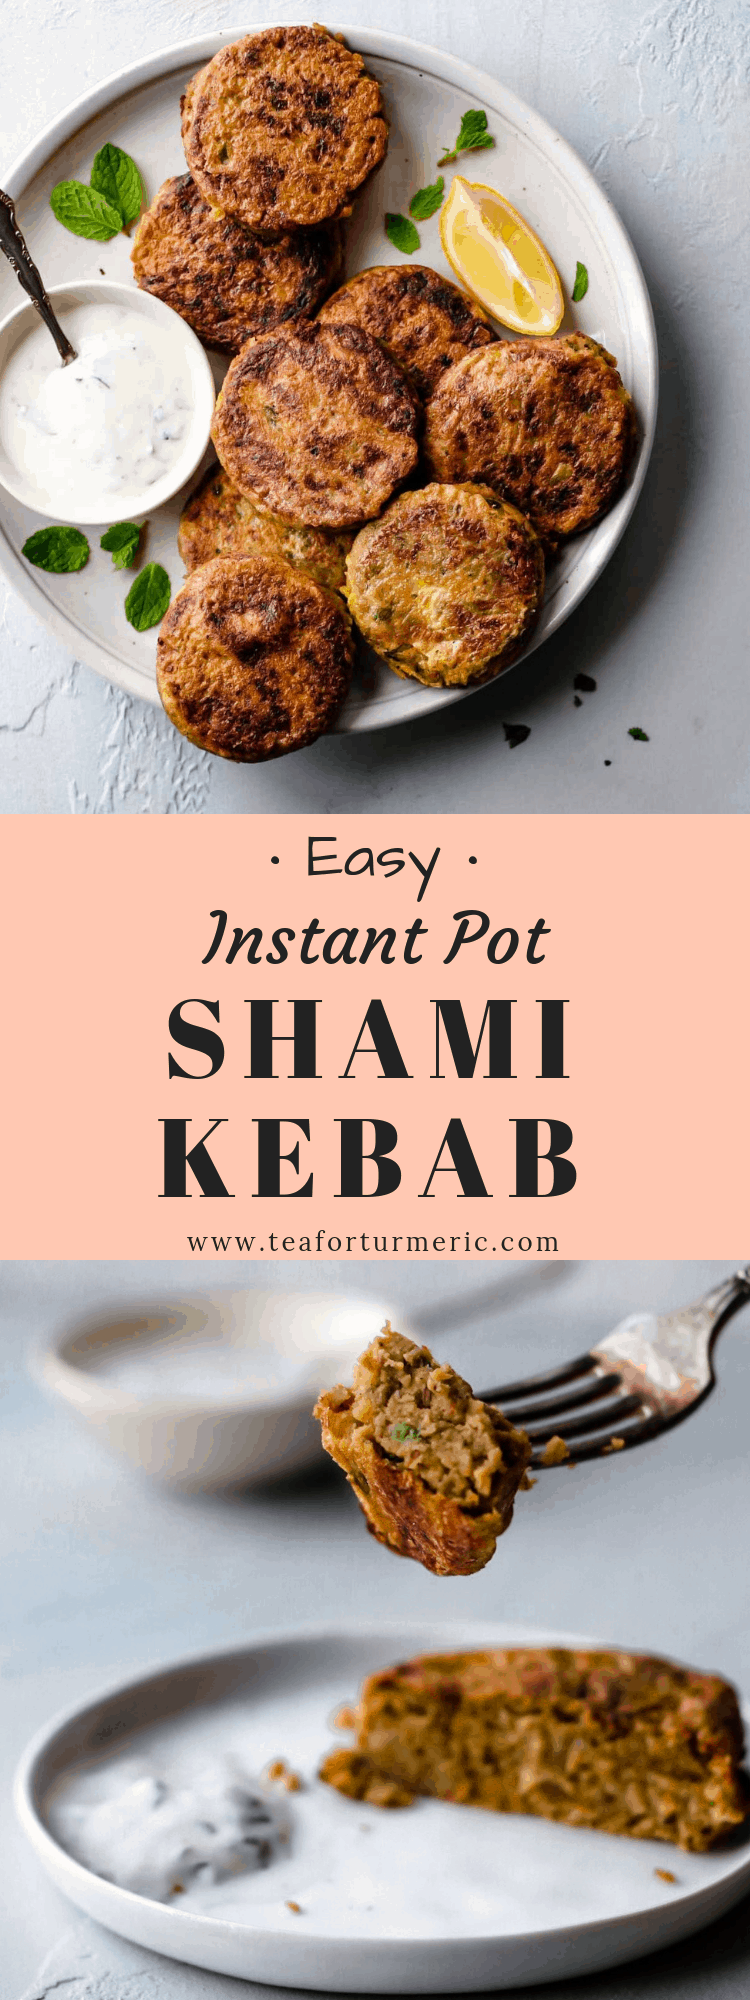 Shami kebabs are Pakistani/Indian tender beef patties filled with yellow split peas (chana dal), onion, ground spices, and herbs, then dipped in eggs and pan-fried. This easy recipe includes Instant Pot and Stovetop instructions. This recipe makes a large batch to enjoy some now, and freeze the rest for later! Naturally gluten-free!